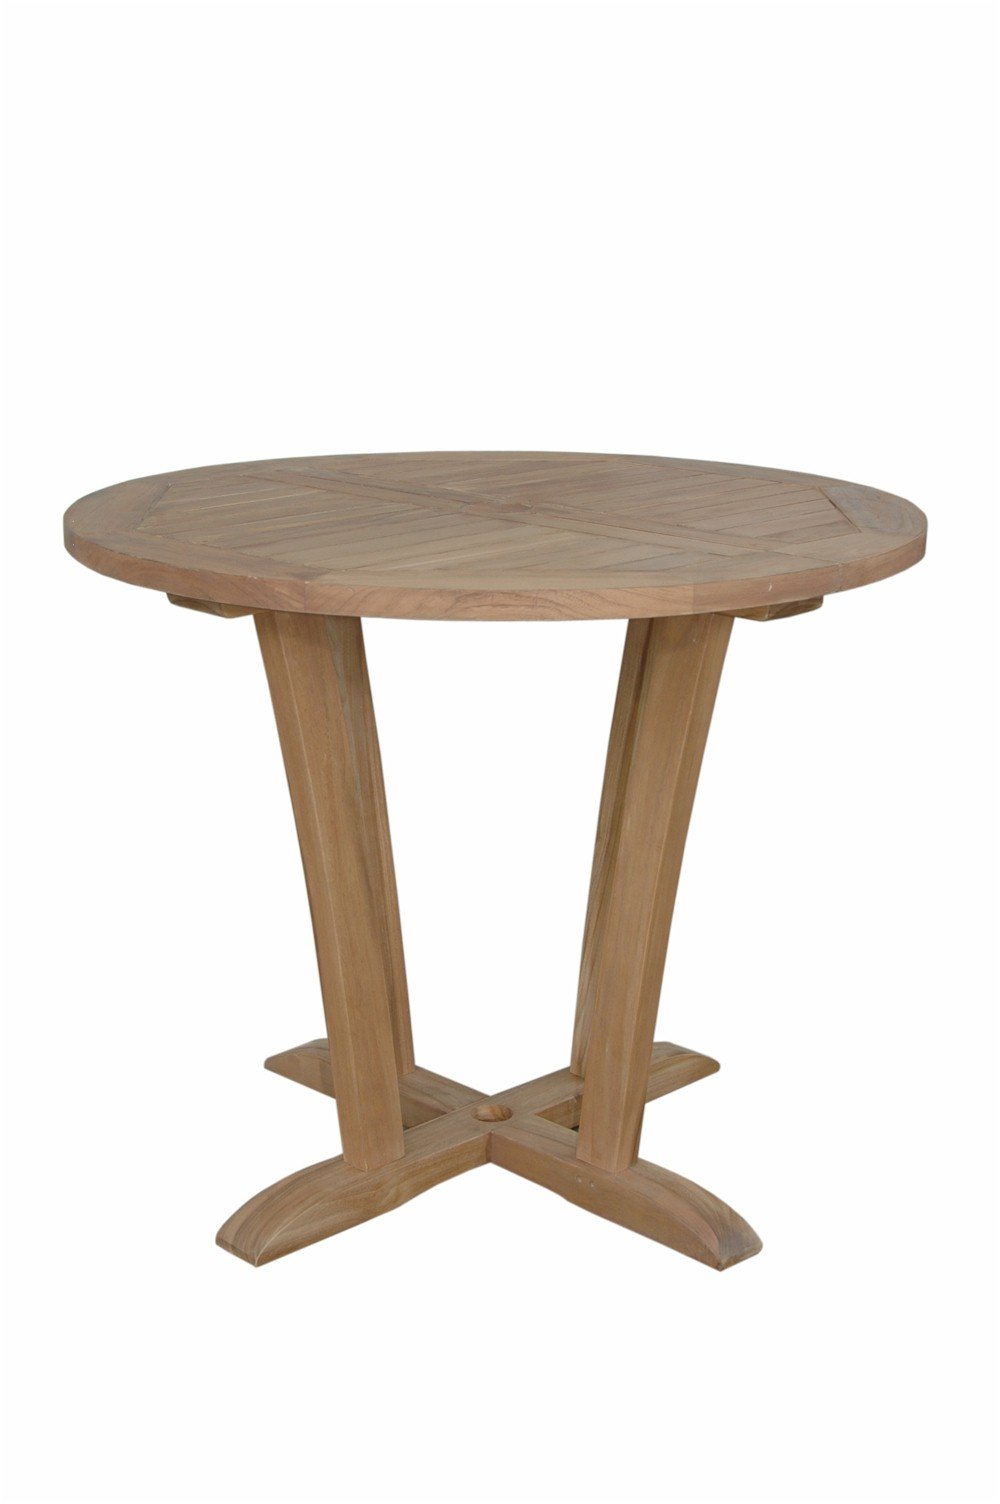 "Descanso 35"" Bistro Round Table"